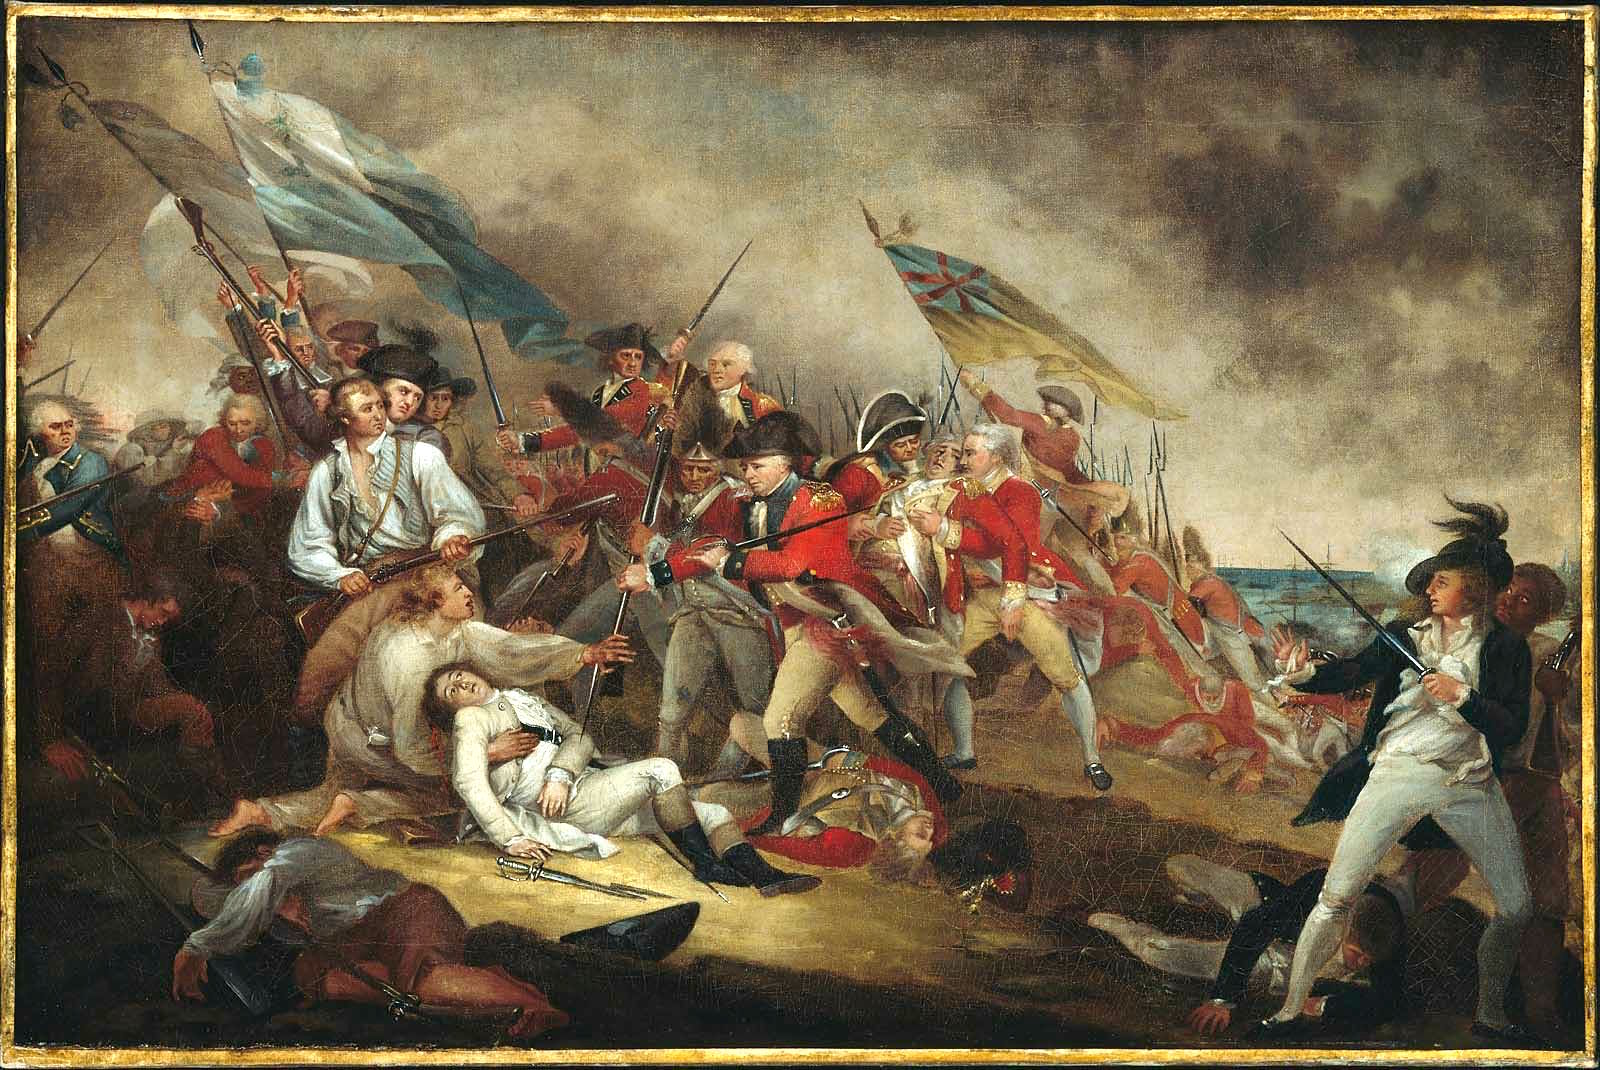 The Death of General Warren at the Battle of Bunker's Hill, June 17,1775, oil on canvas (75.5 × 50.1 cm, 29.7 × 19.7 in), 1786. artist commissioned by the Warren family; descended in the Warren family to J. Collins Warren, 1909-27; to Joseph Warren, 1927-42; to his estate; to Howland Shaw Warren, 1946; to MFA, 1977, gift of Howland S. Warren. Currently at the Museum of Fine Arts, Boston, Massachusetts.